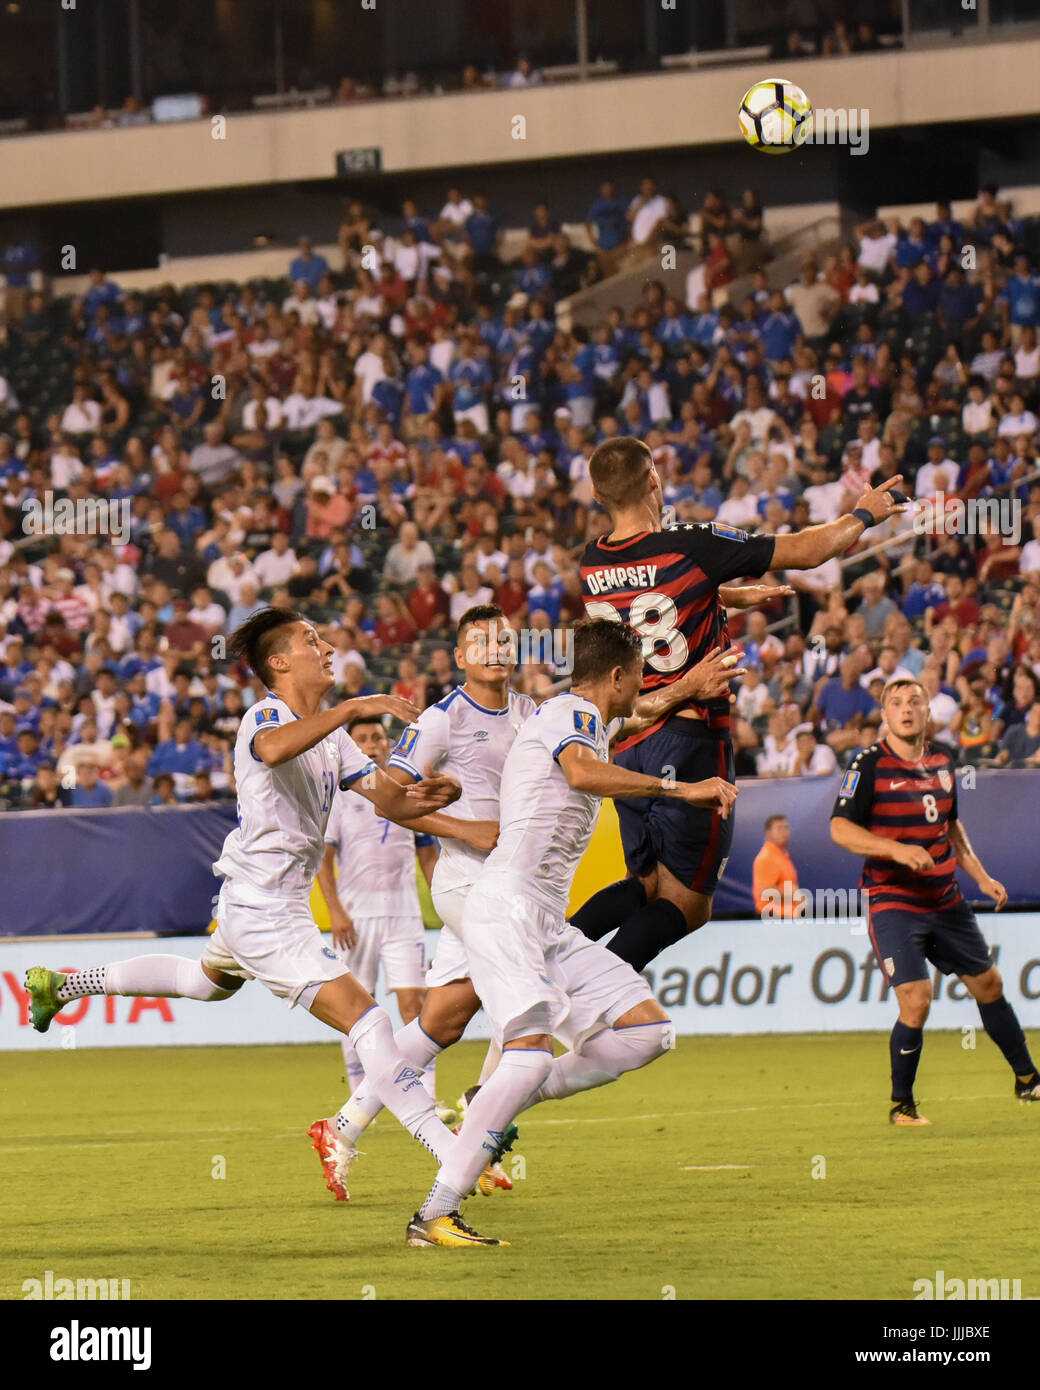 Clint Dempsey jumps for a header during the USMNT United States Mens National Team soccer | football match against - Stock Image